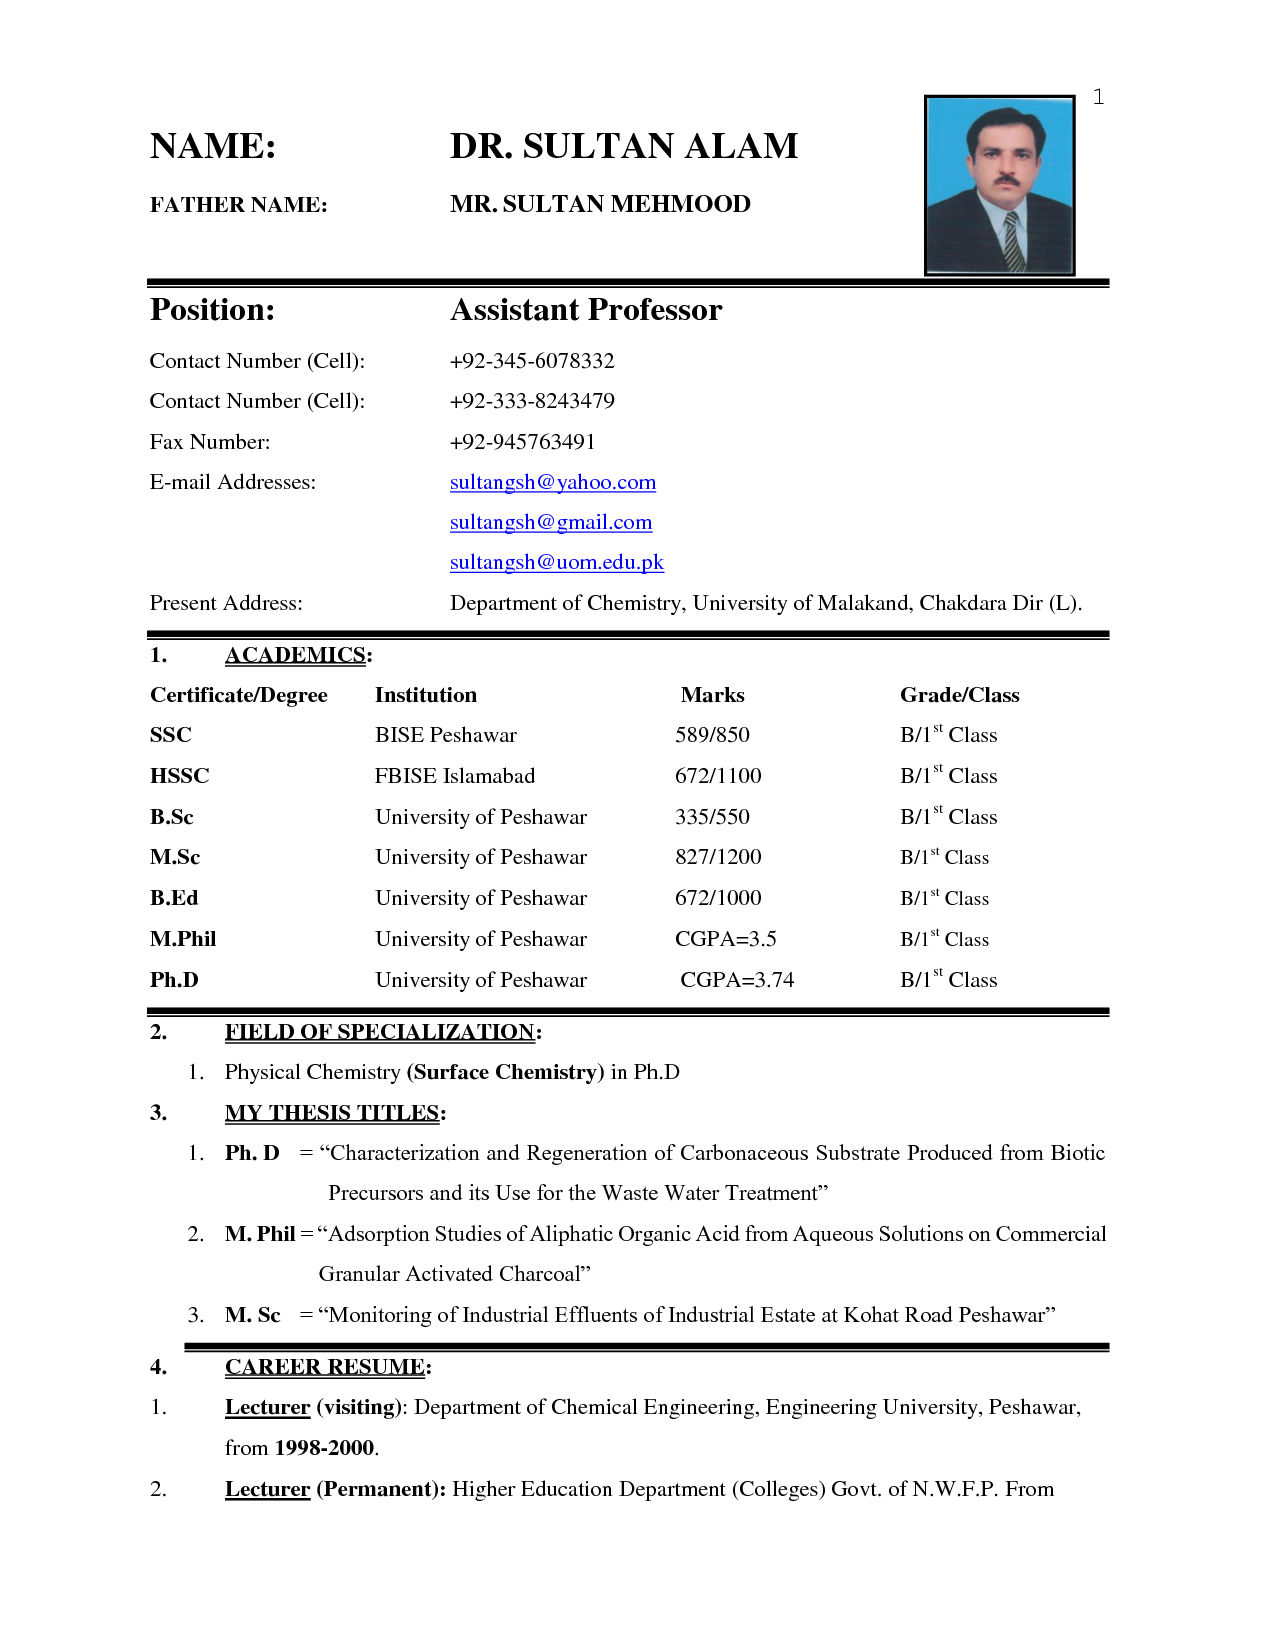 Biodata Form In Word Simple Biodata Format Doc Letterformats Biodata Sample  Download